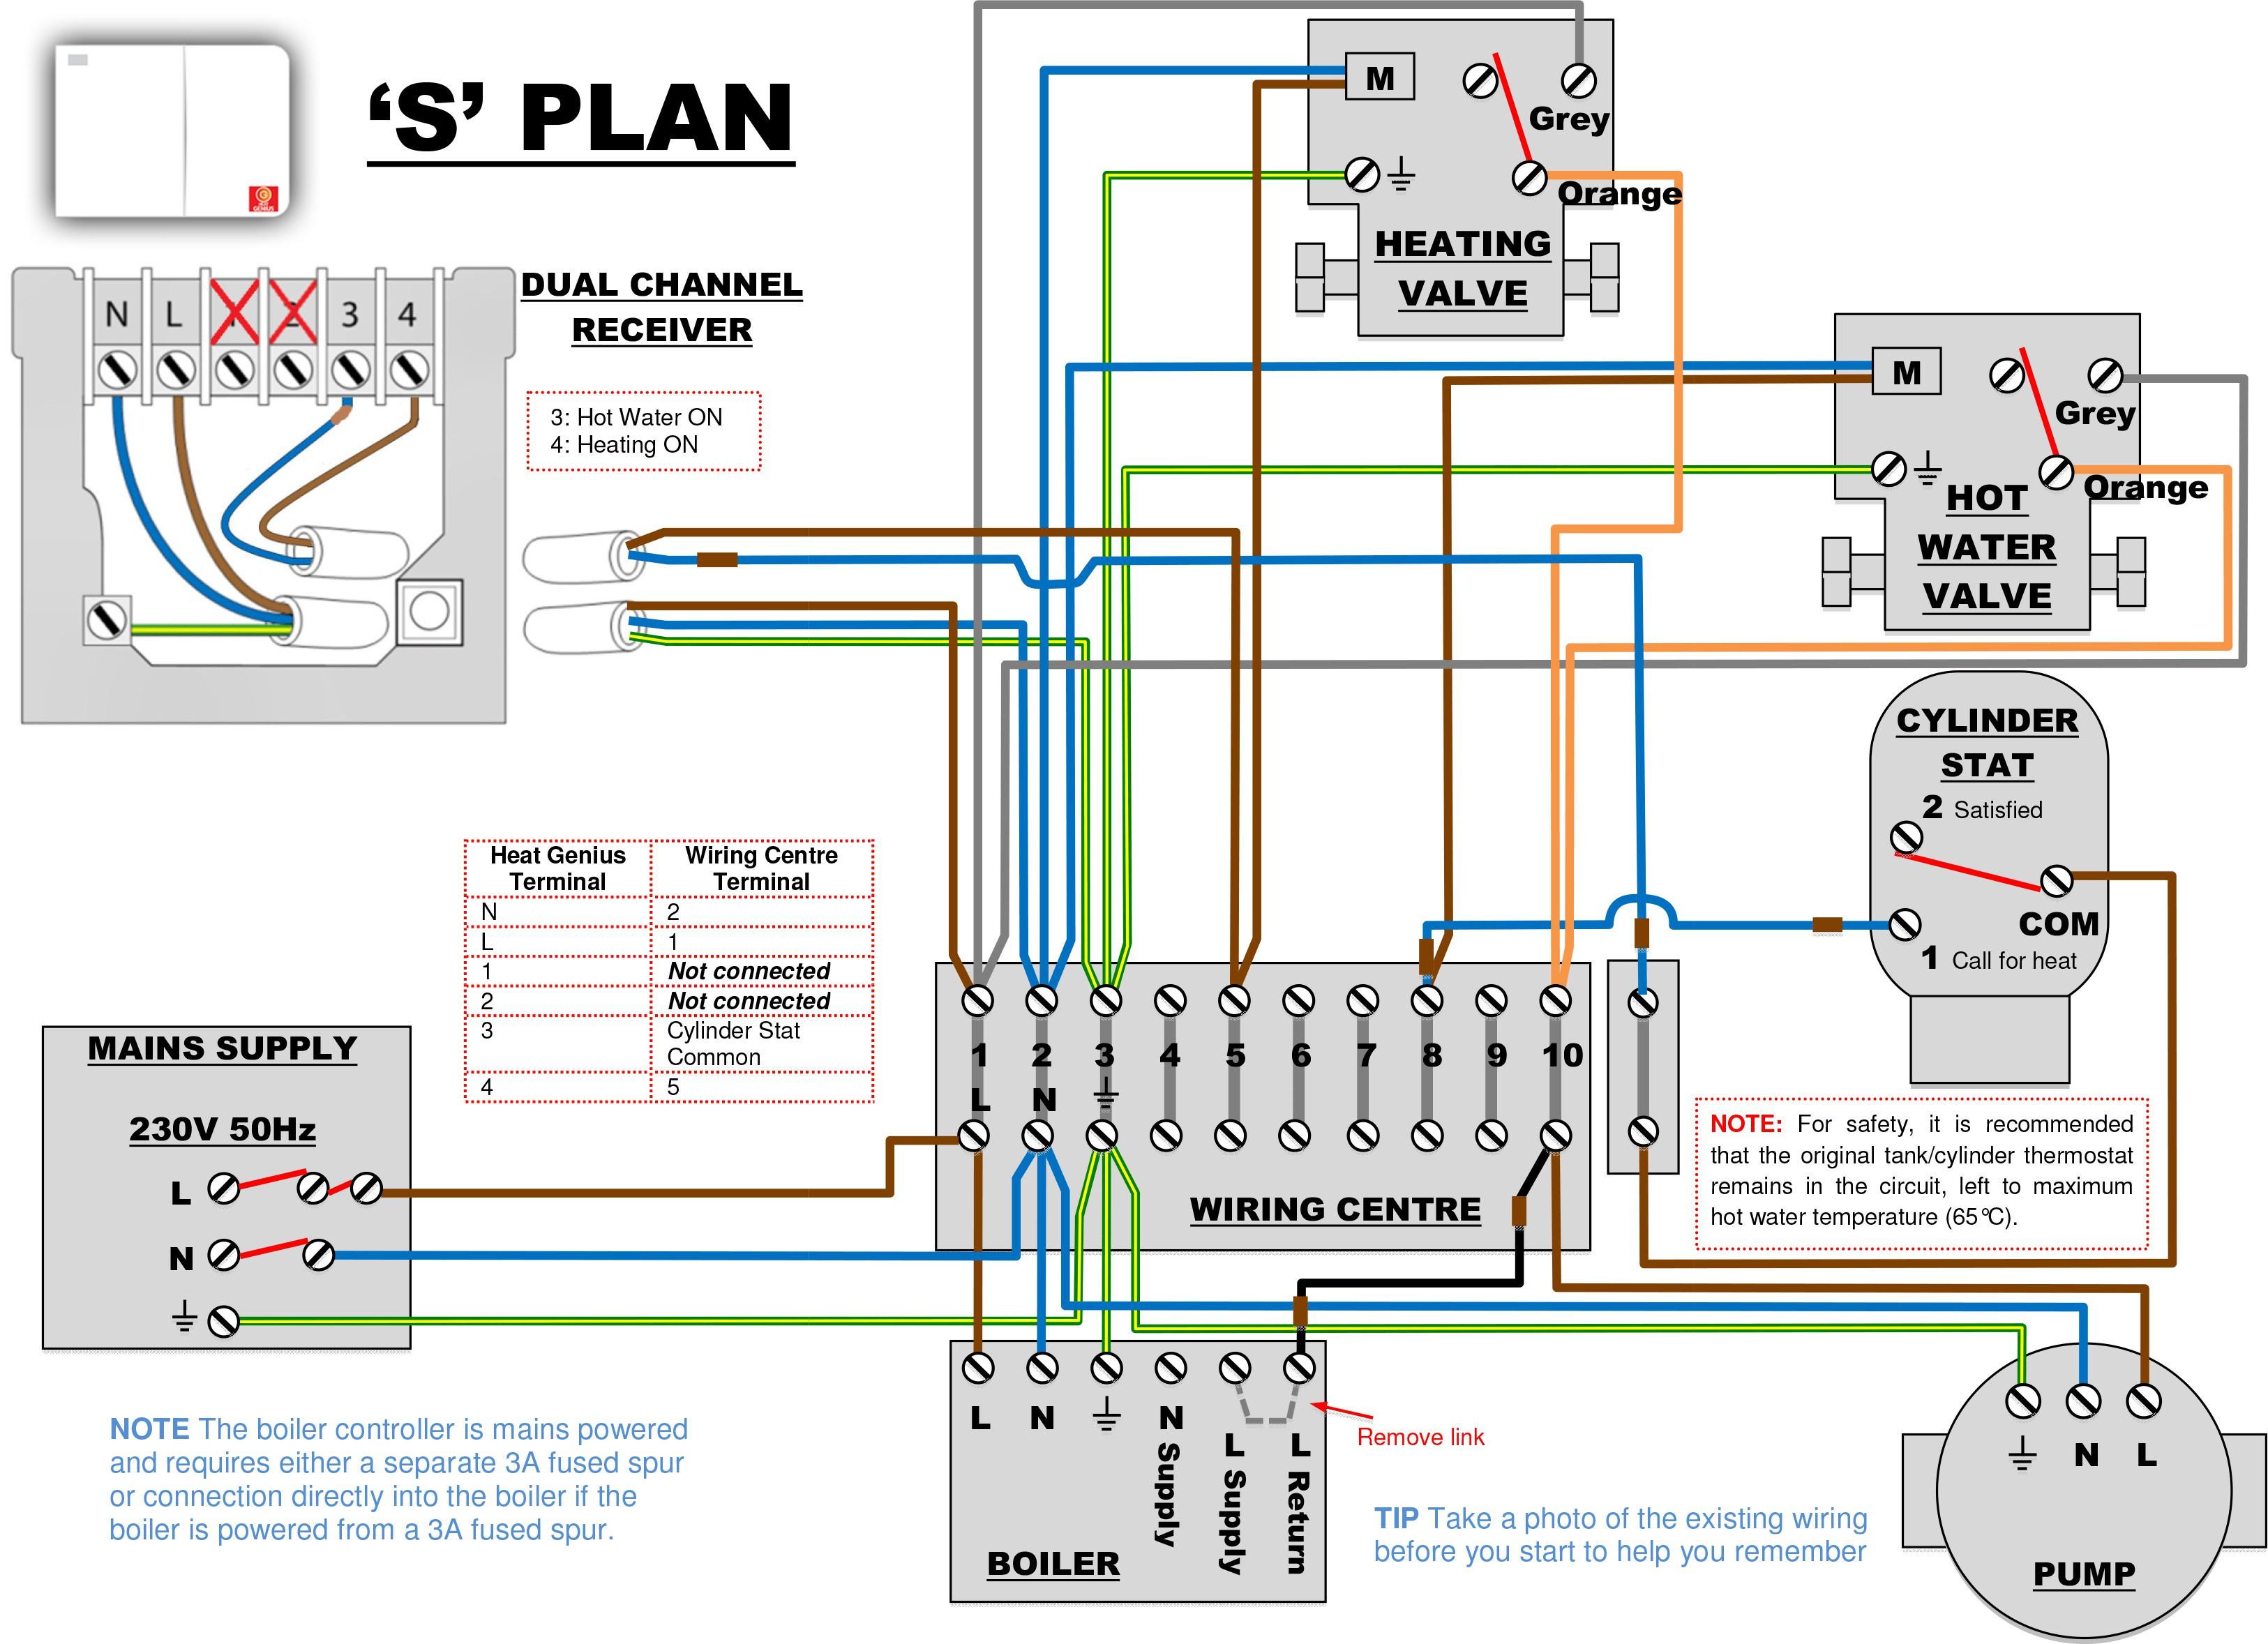 Nest Thermostat Humidifier Wiring Diagram Inspirational Awesome Nest - Wiring Diagram For Nest Thermostat With Humidifier